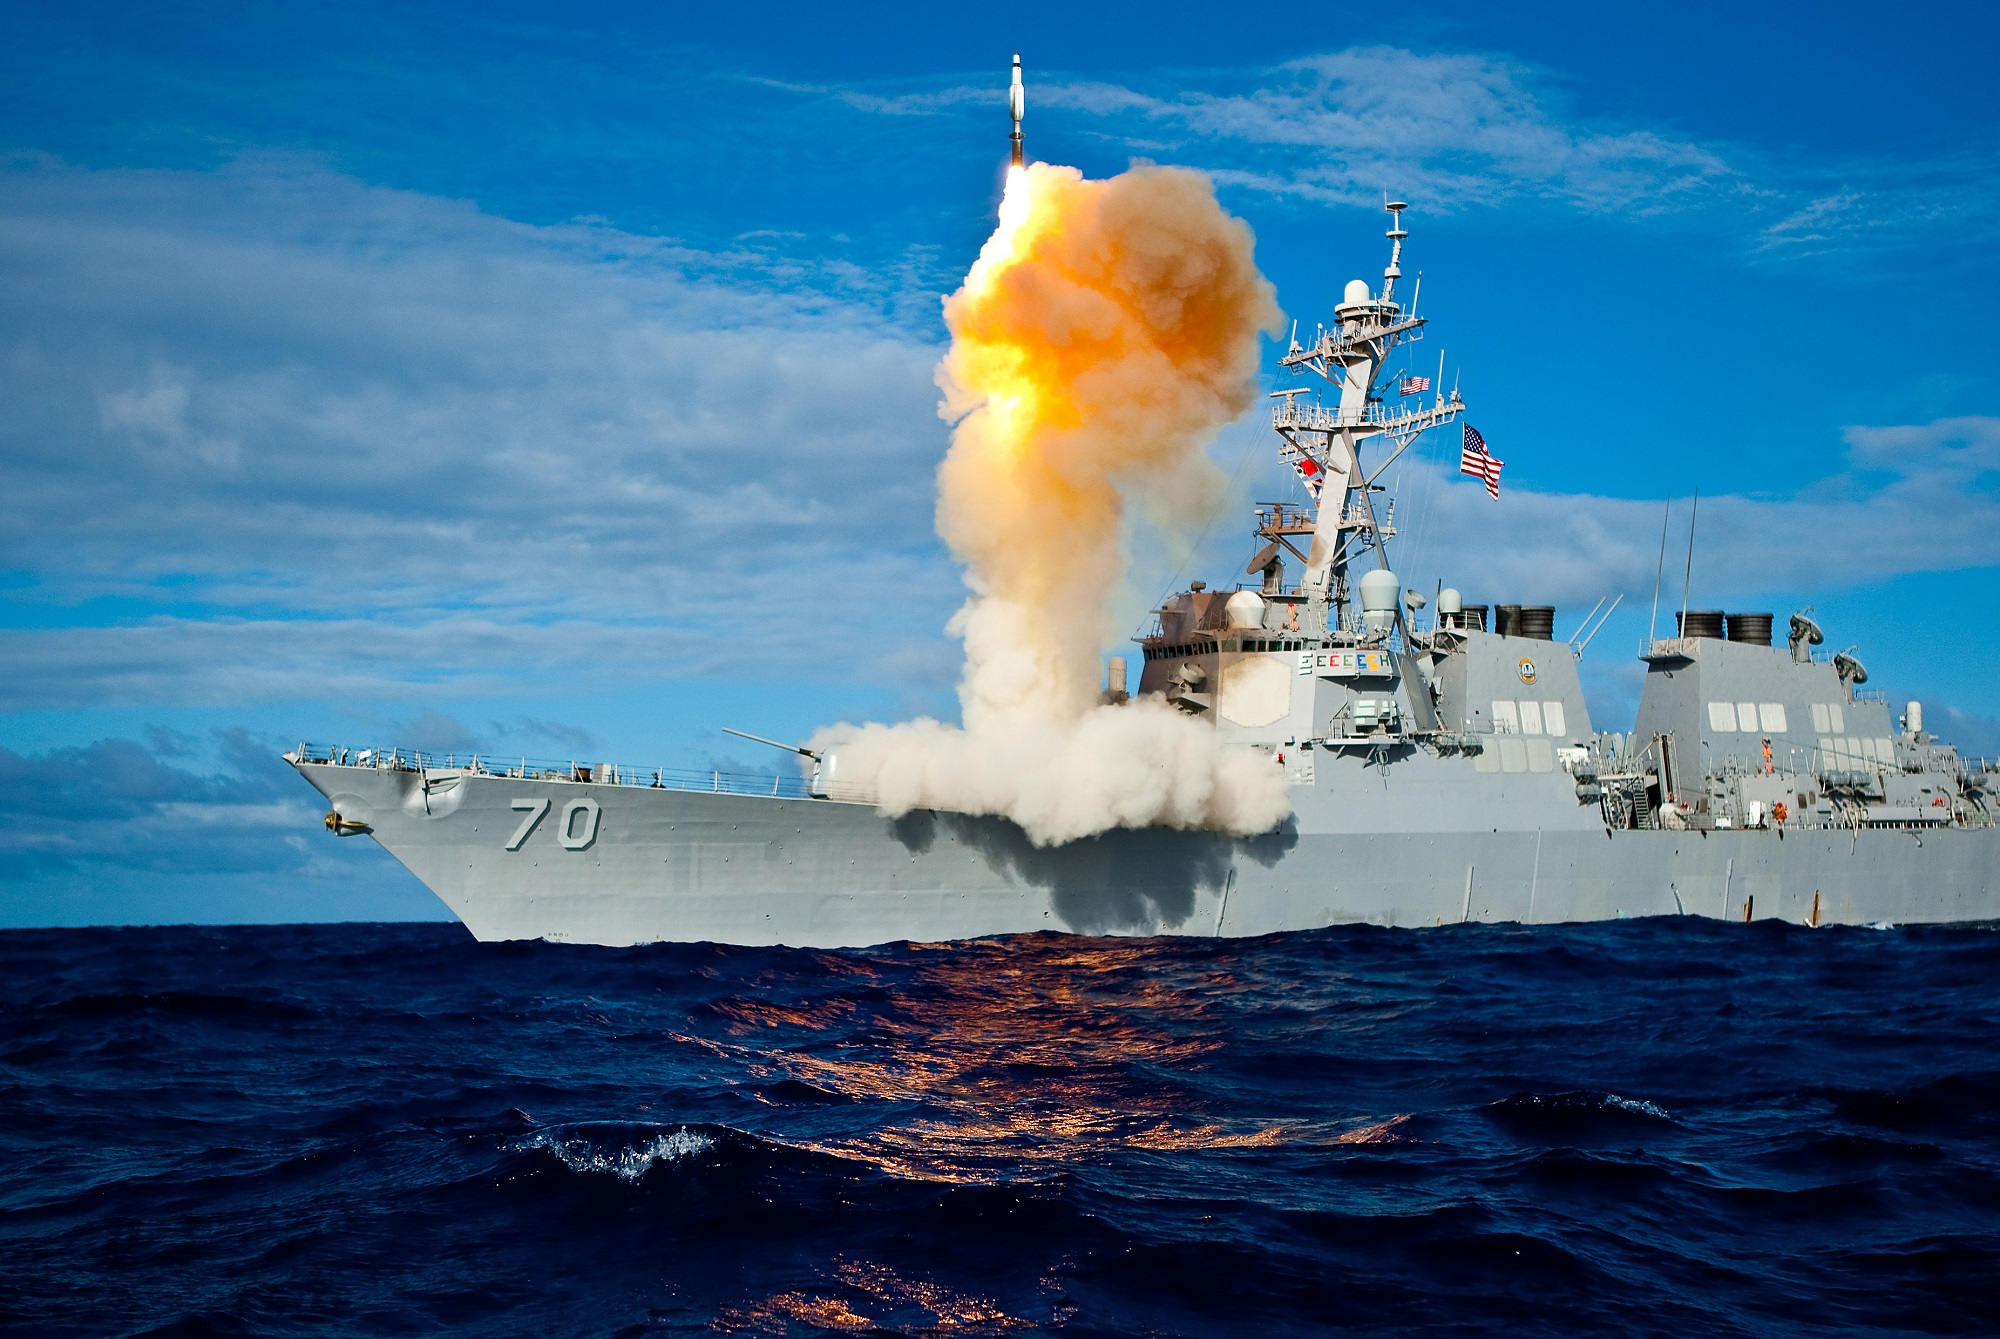 During exercise Stellar Avenger, the U.S. Navy Aegis-class destroyer Hopper launches a Standard Missile-3 Block IA. (Courtesy of the U.S. Navy)